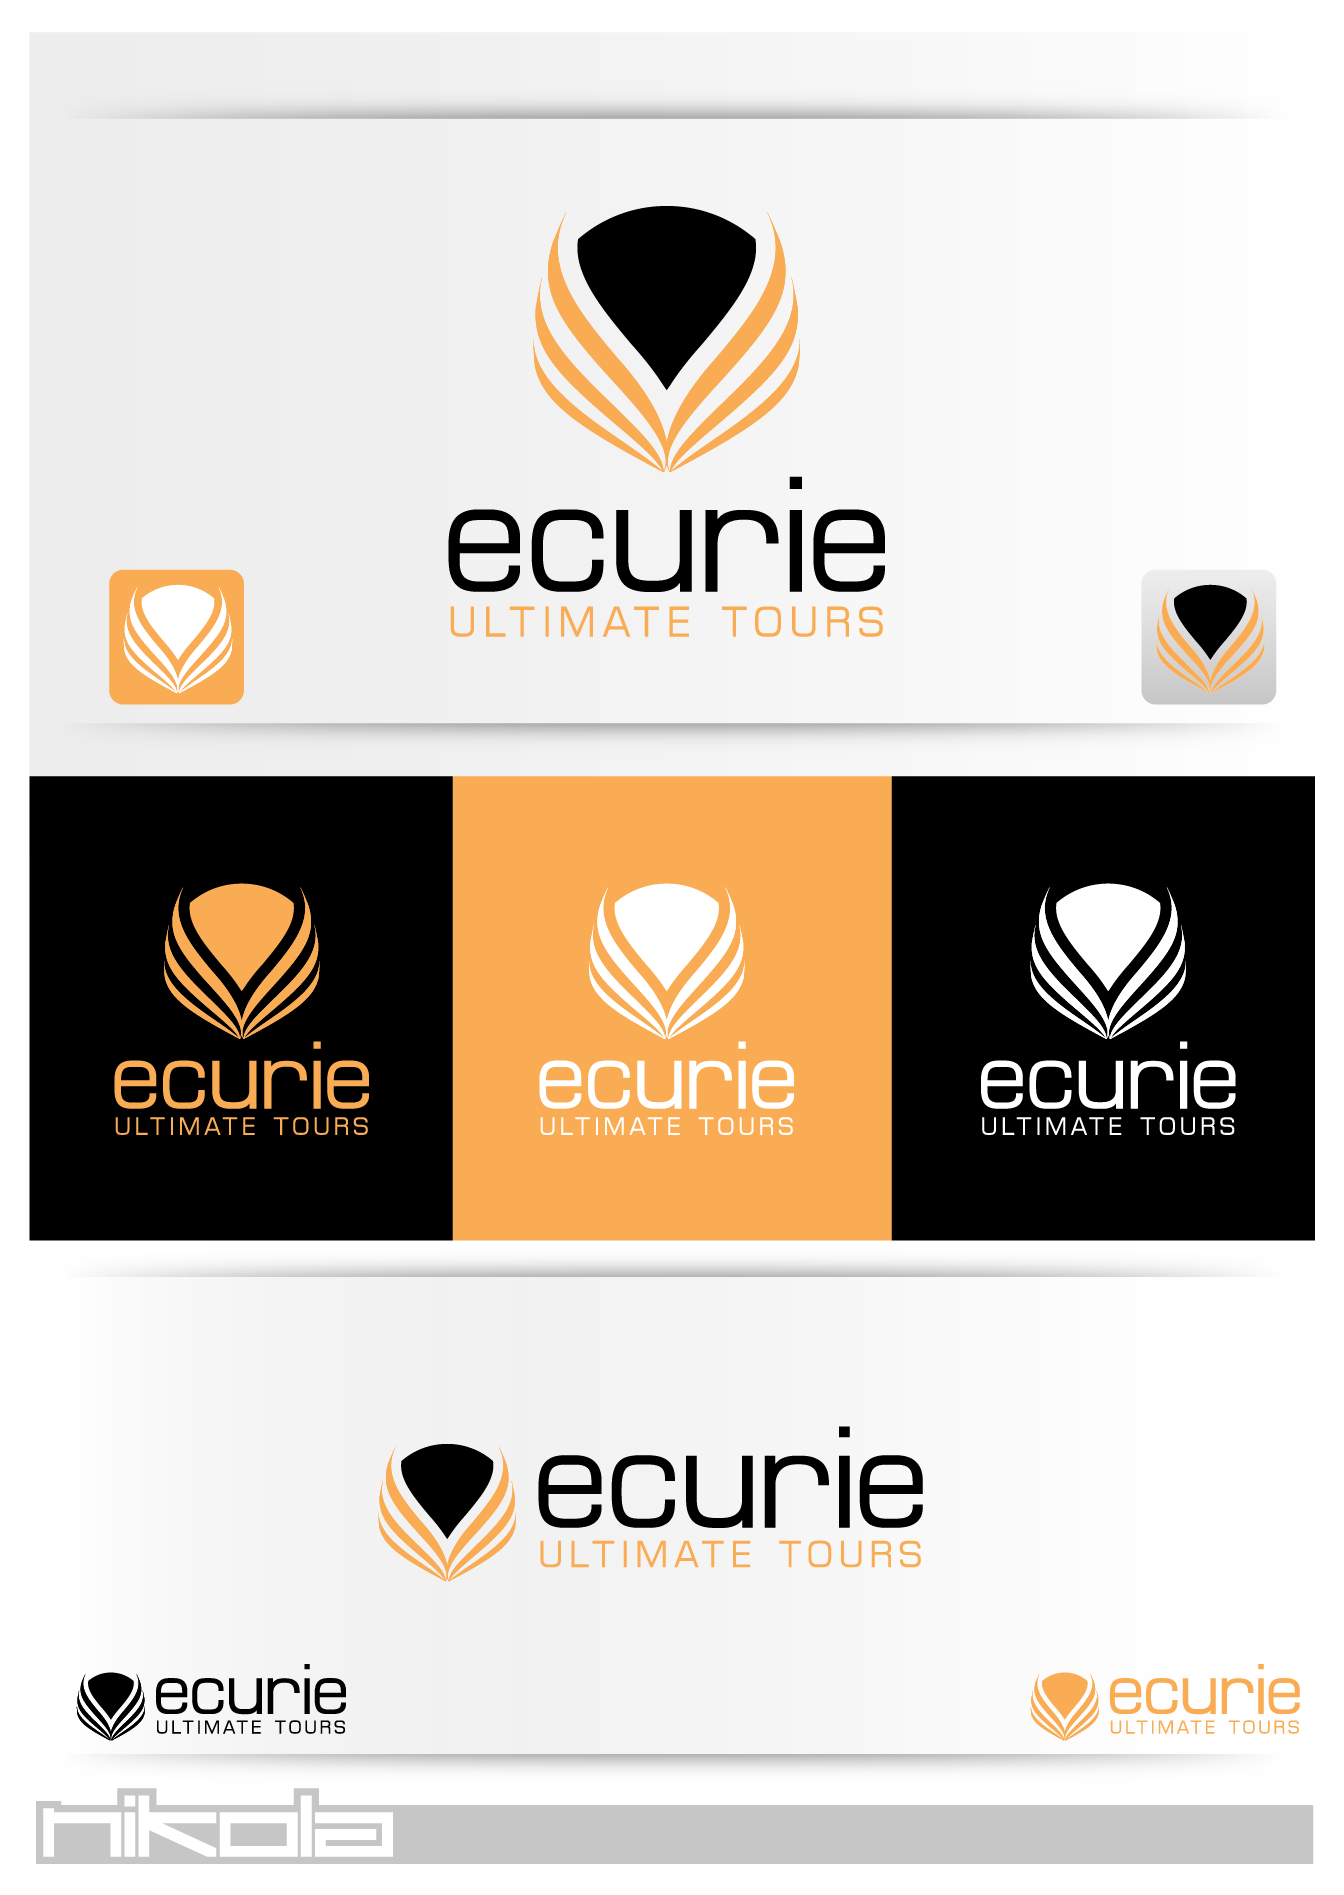 Create the next logo for Ecurie Ultimate Tours